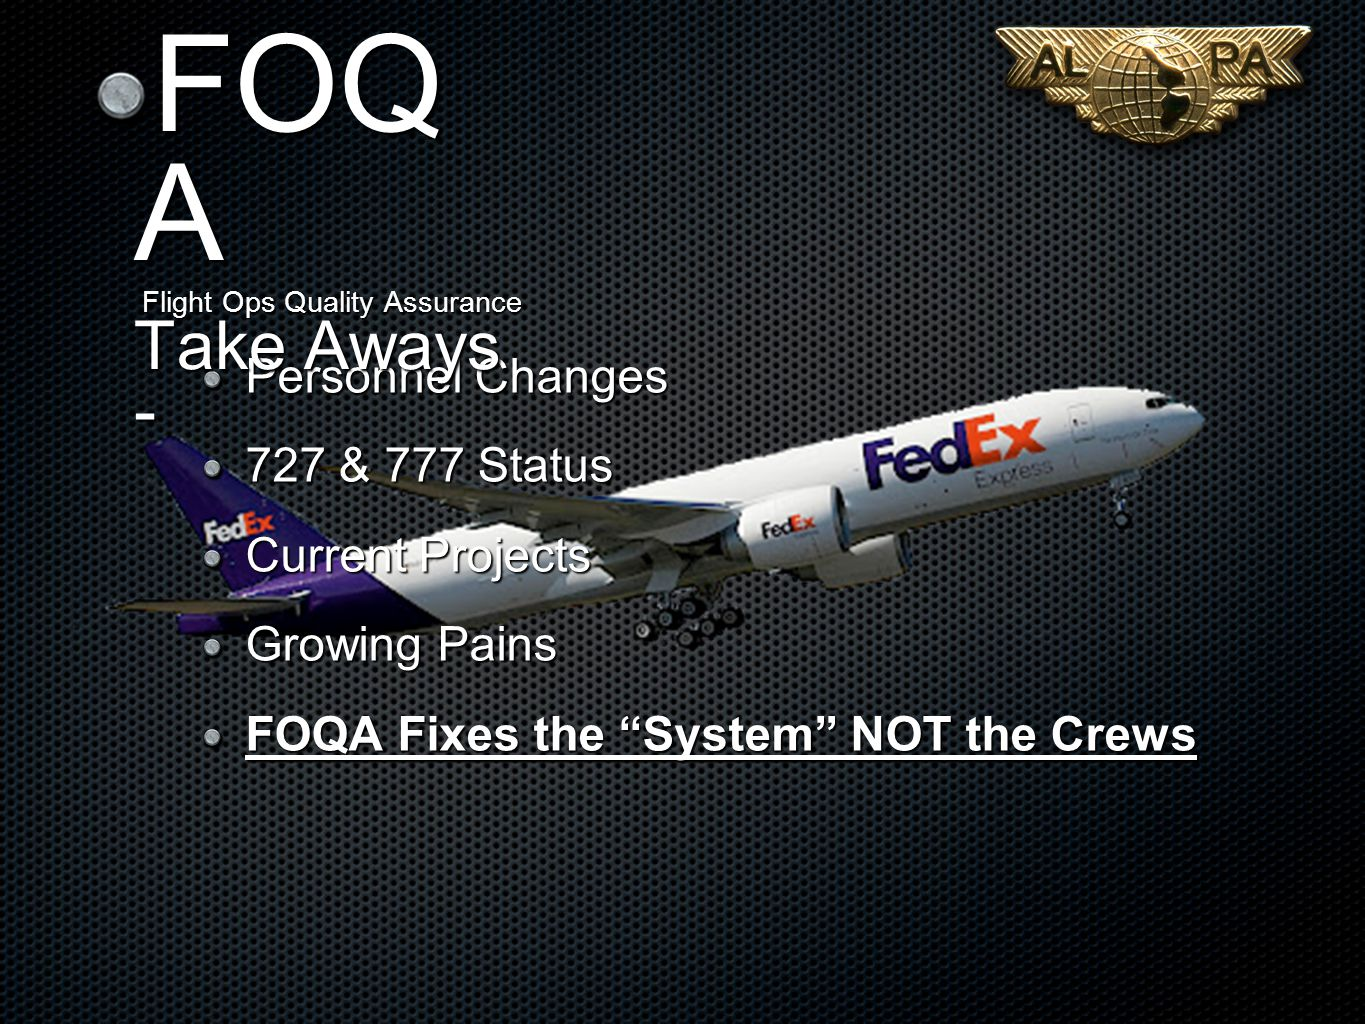 Personnel Changes 727 & 777 Status Current Projects Growing Pains FOQA Fixes the System NOT the Crews FOQ A Flight Ops Quality Assurance Take Aways -